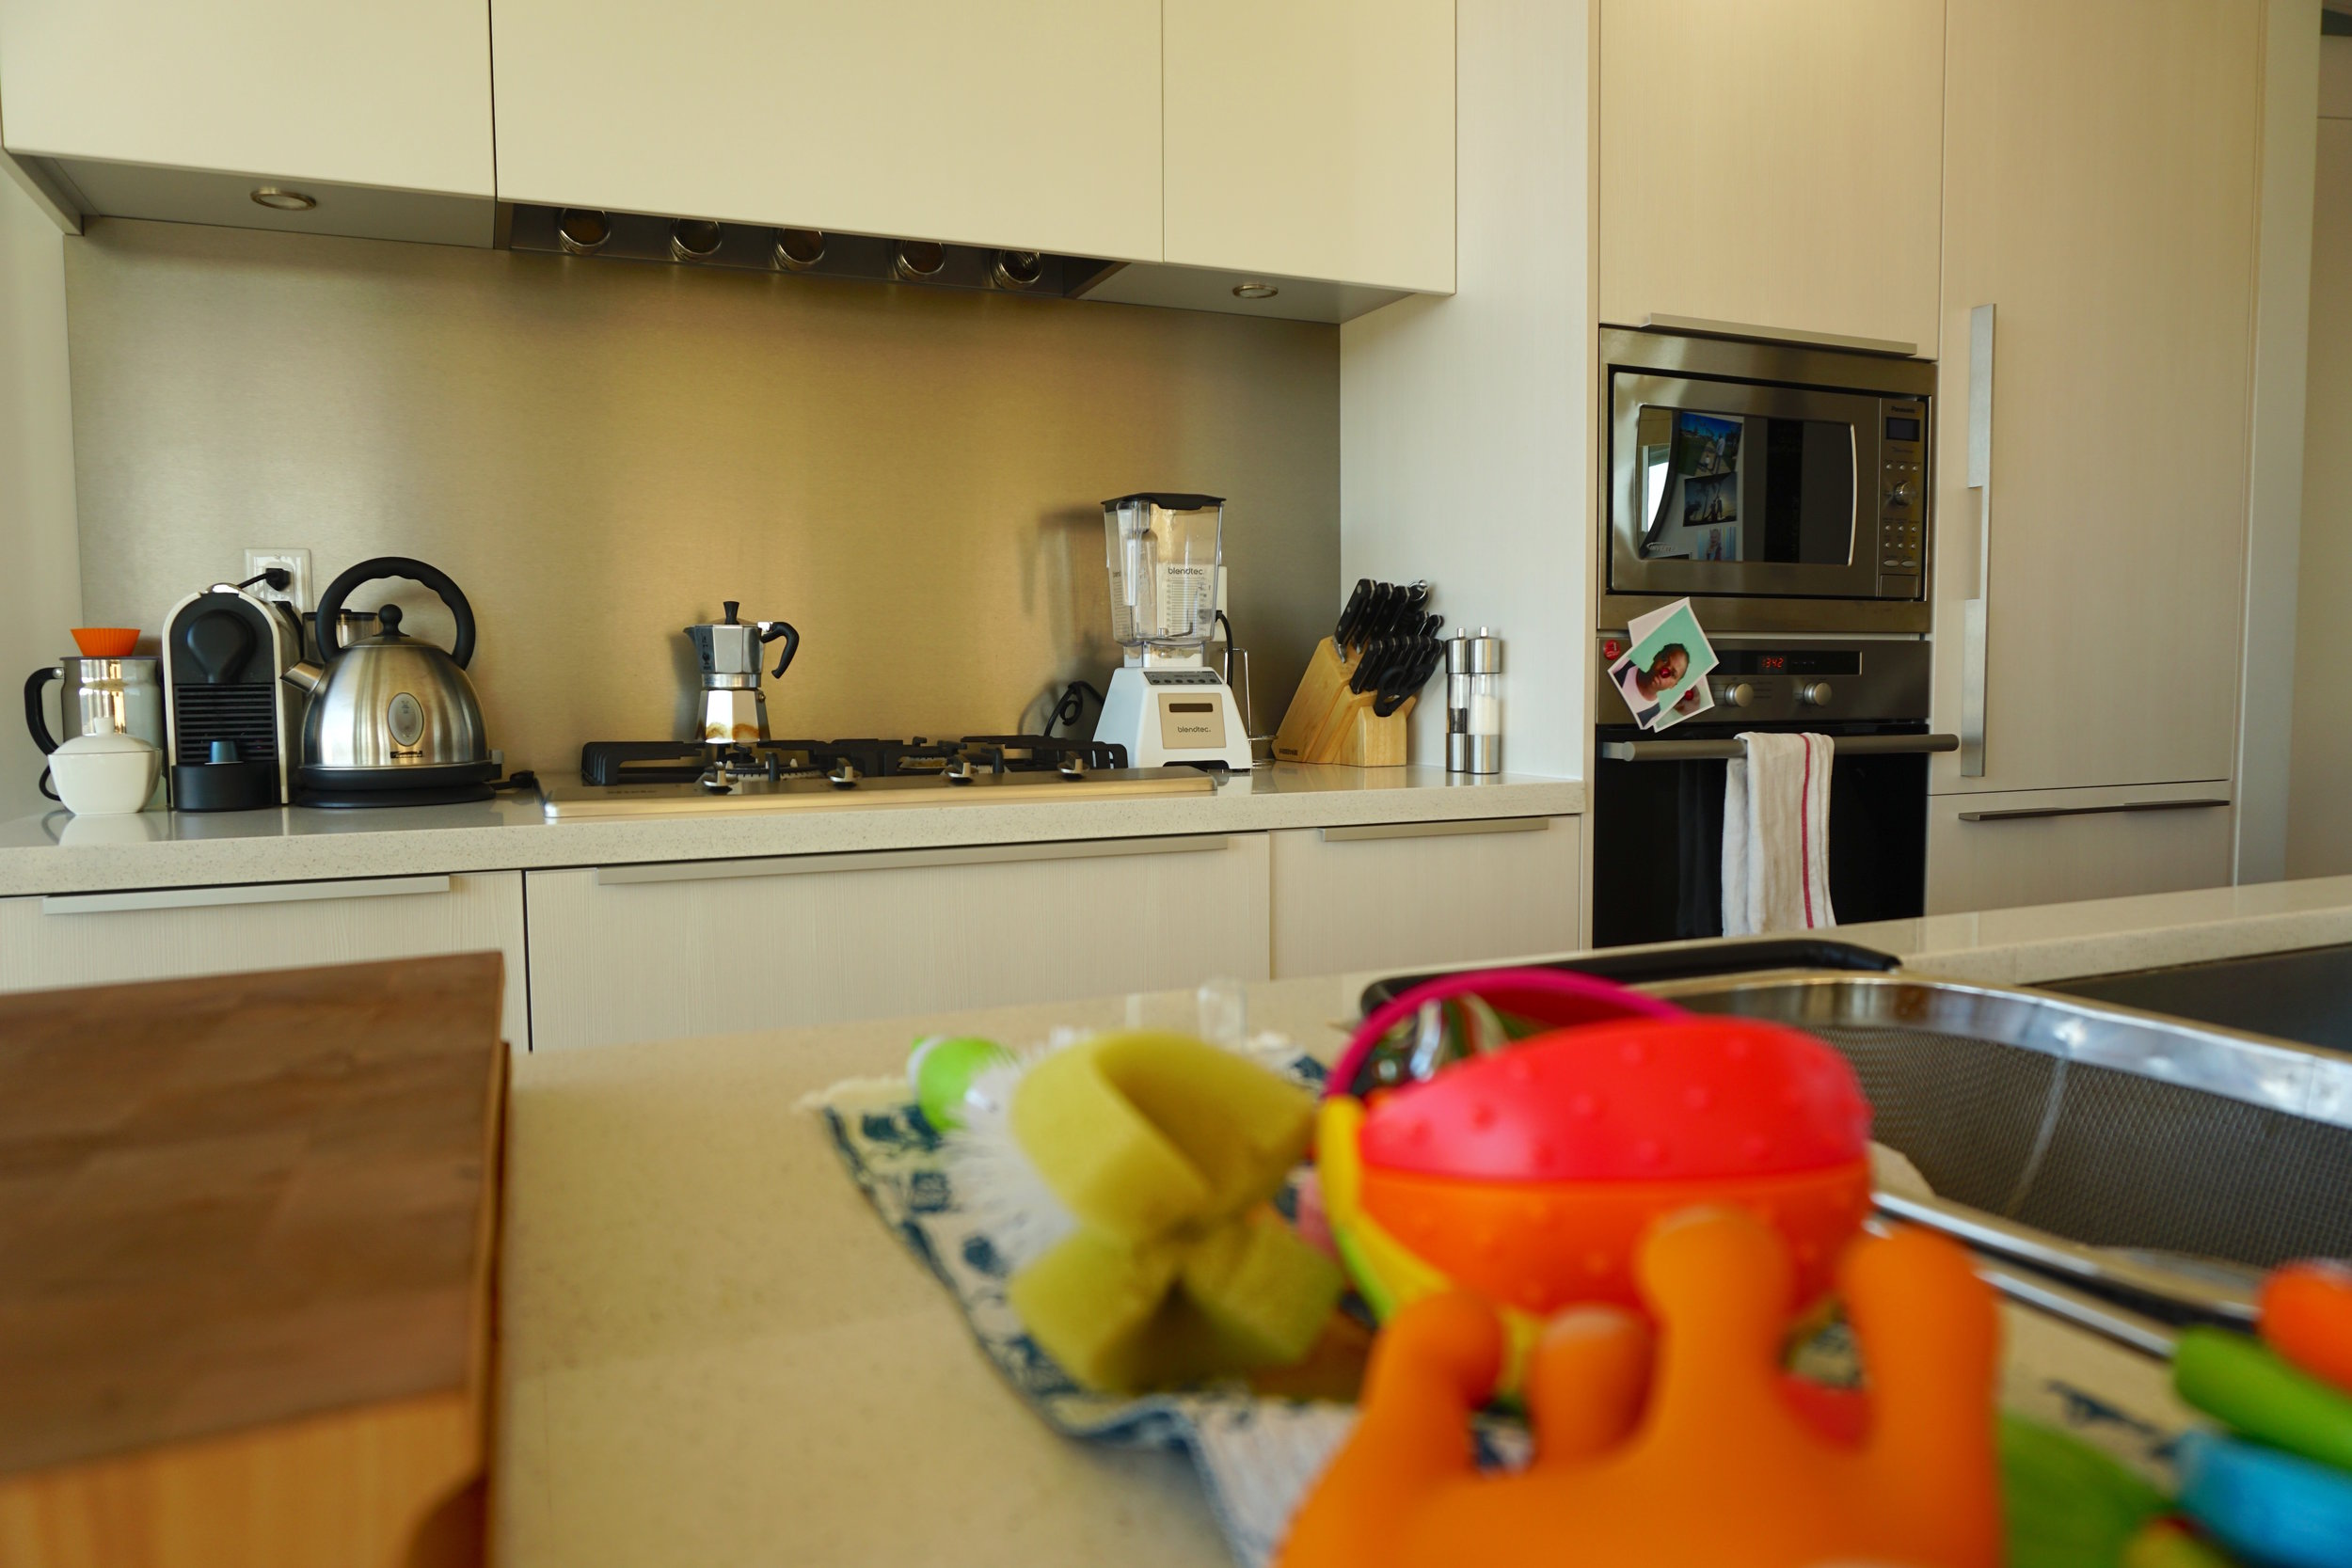 Kitchen, complete with baby teething toys